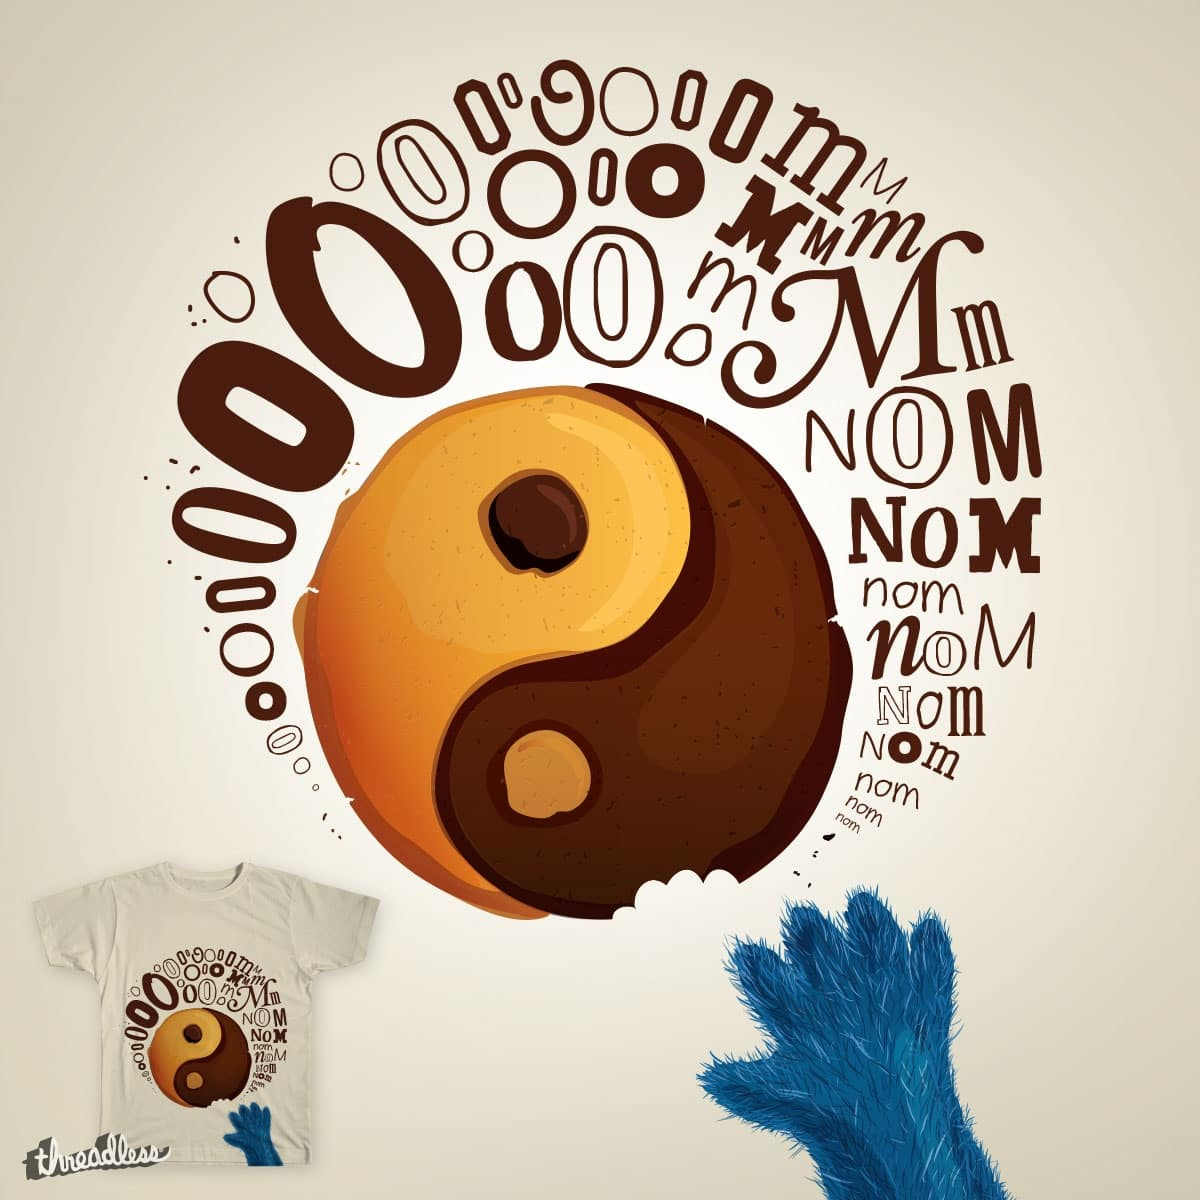 Ooooooooooom nom nom nom  by viktoriaaa1 on Threadless